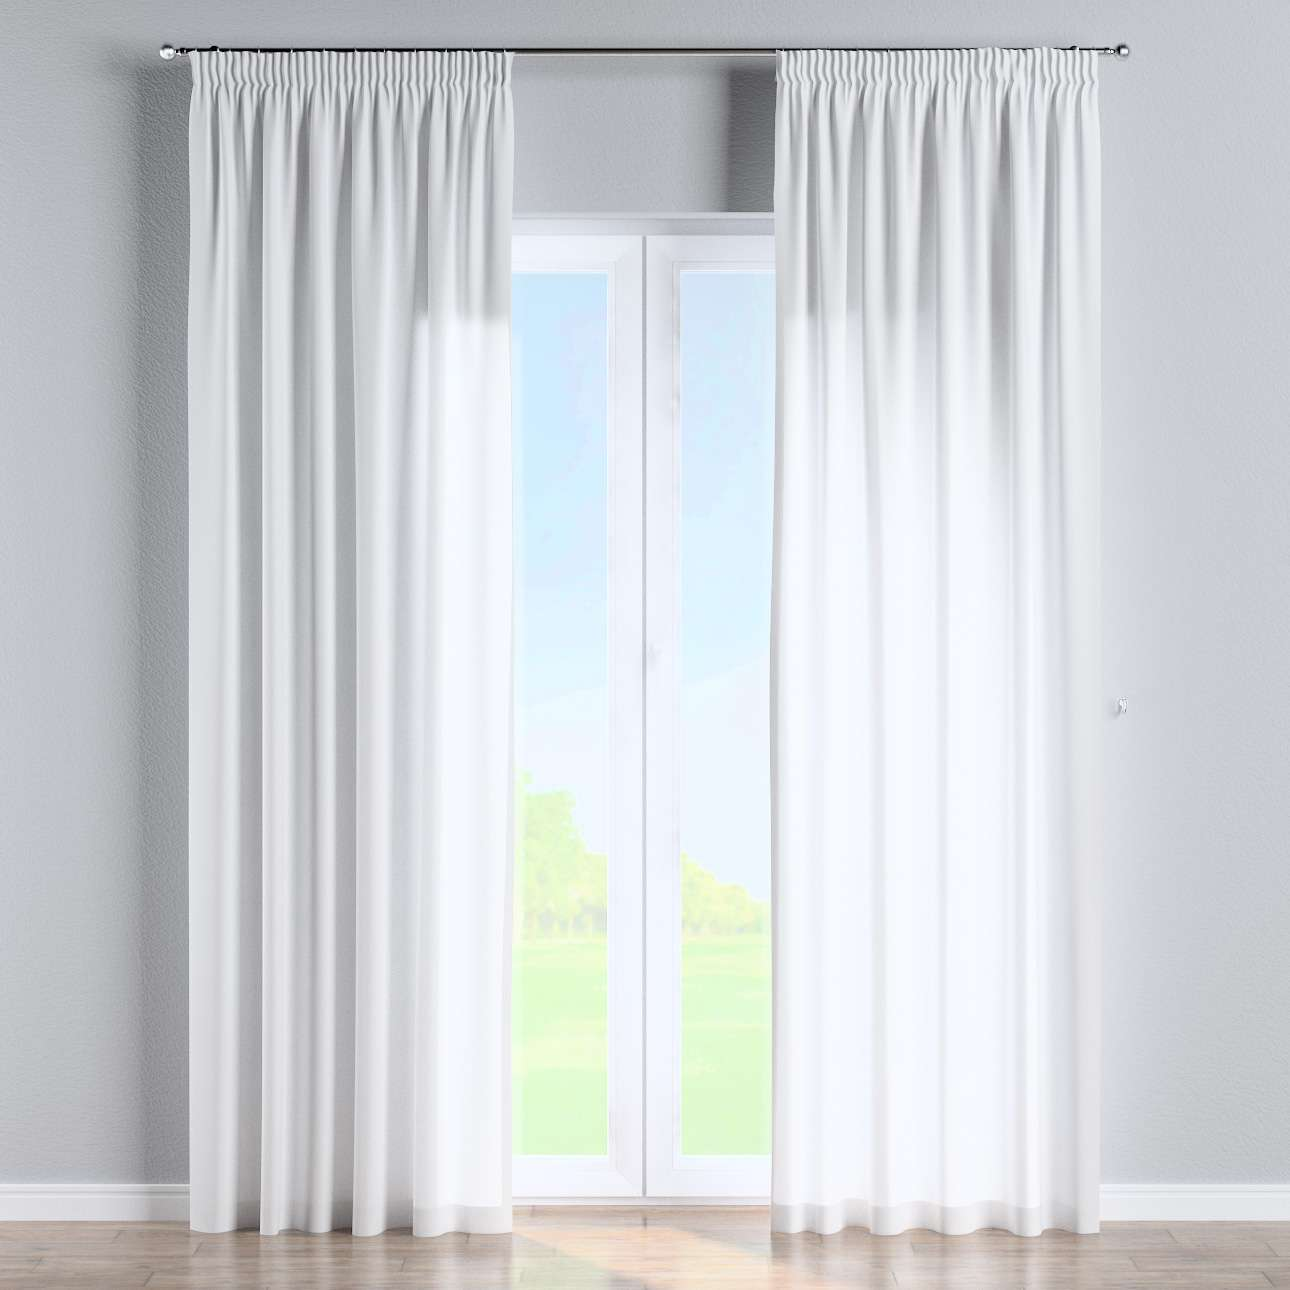 Pencil pleat curtains 130 x 260 cm (51 x 102 inch) in collection Loneta , fabric: 133-02